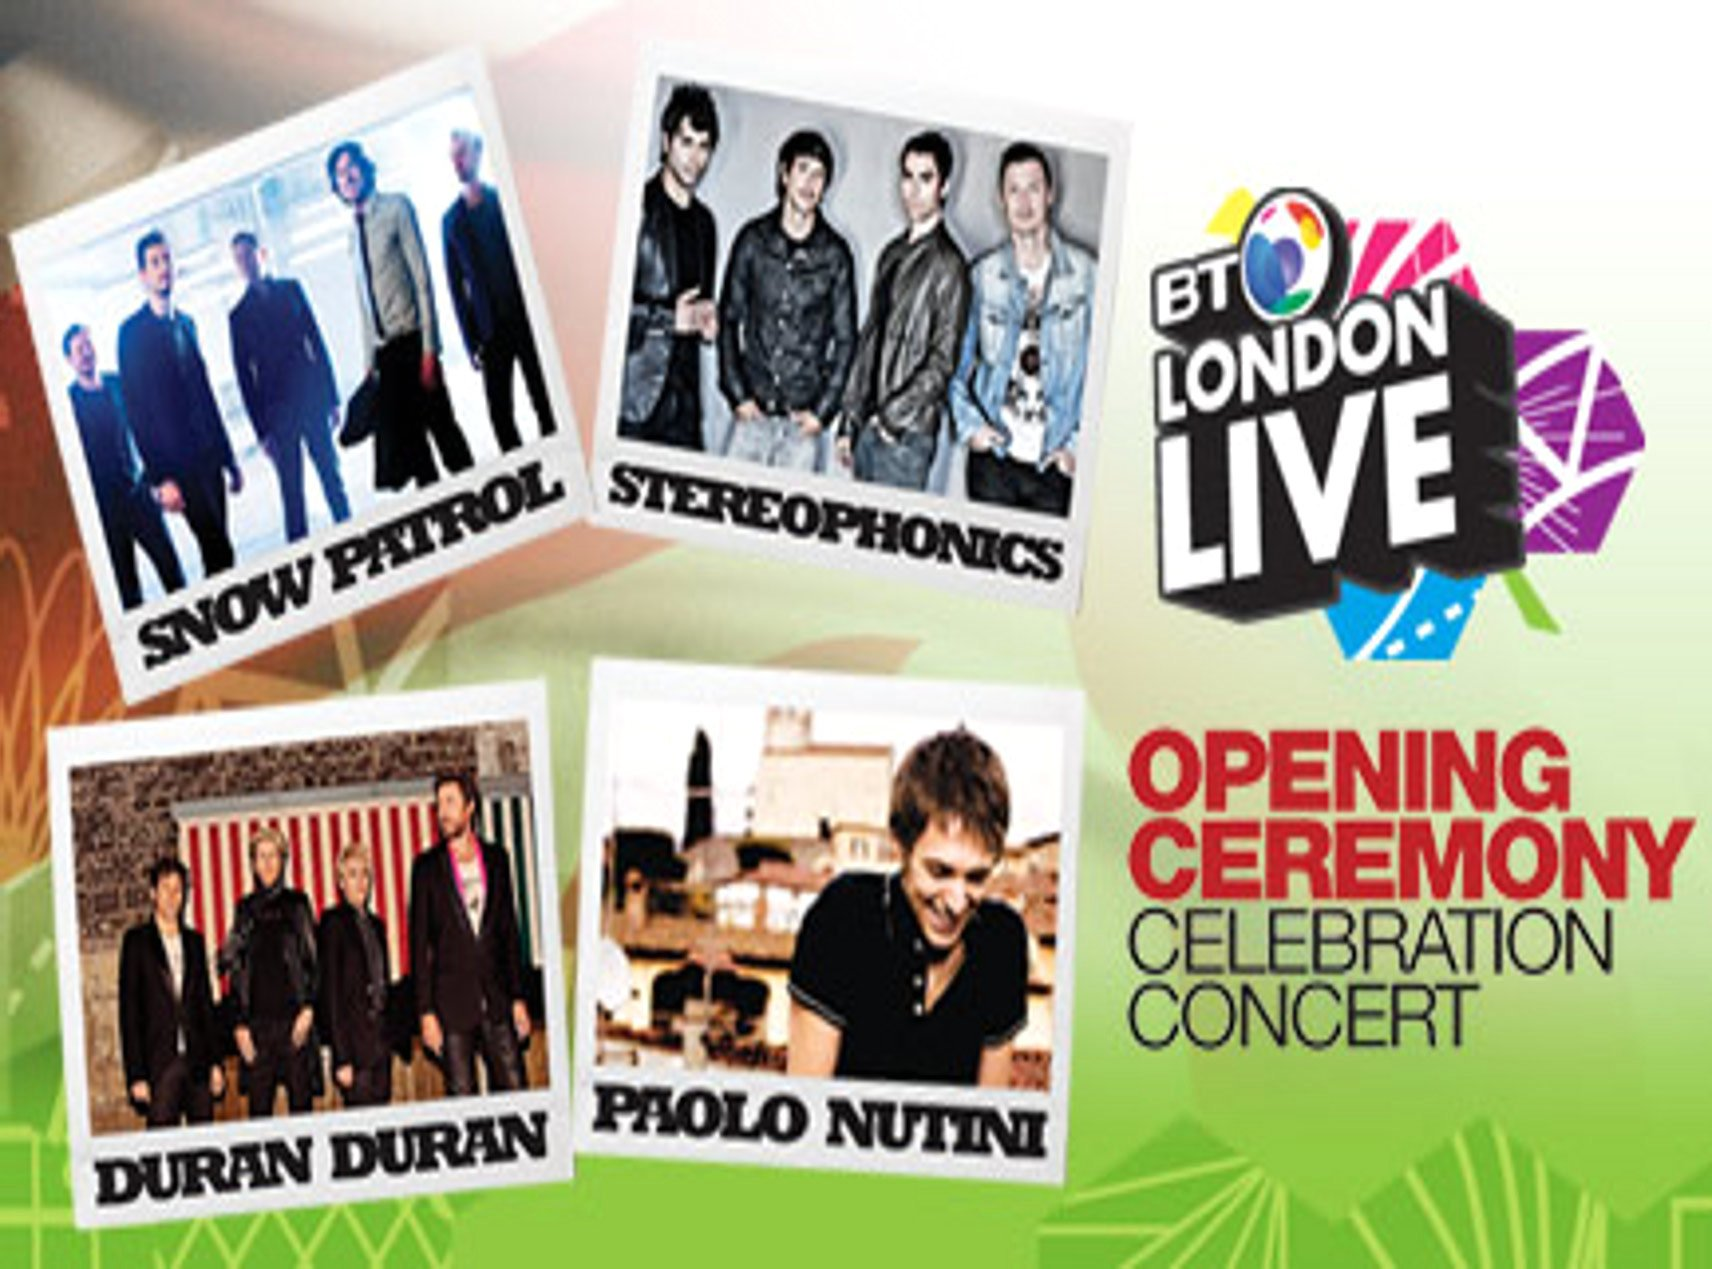 Duran Duran, Snow Patrol, Stereophonics and Paolo Nutini are celebrating the start of London Olympic Games at a special concert in Hyde Park this evening